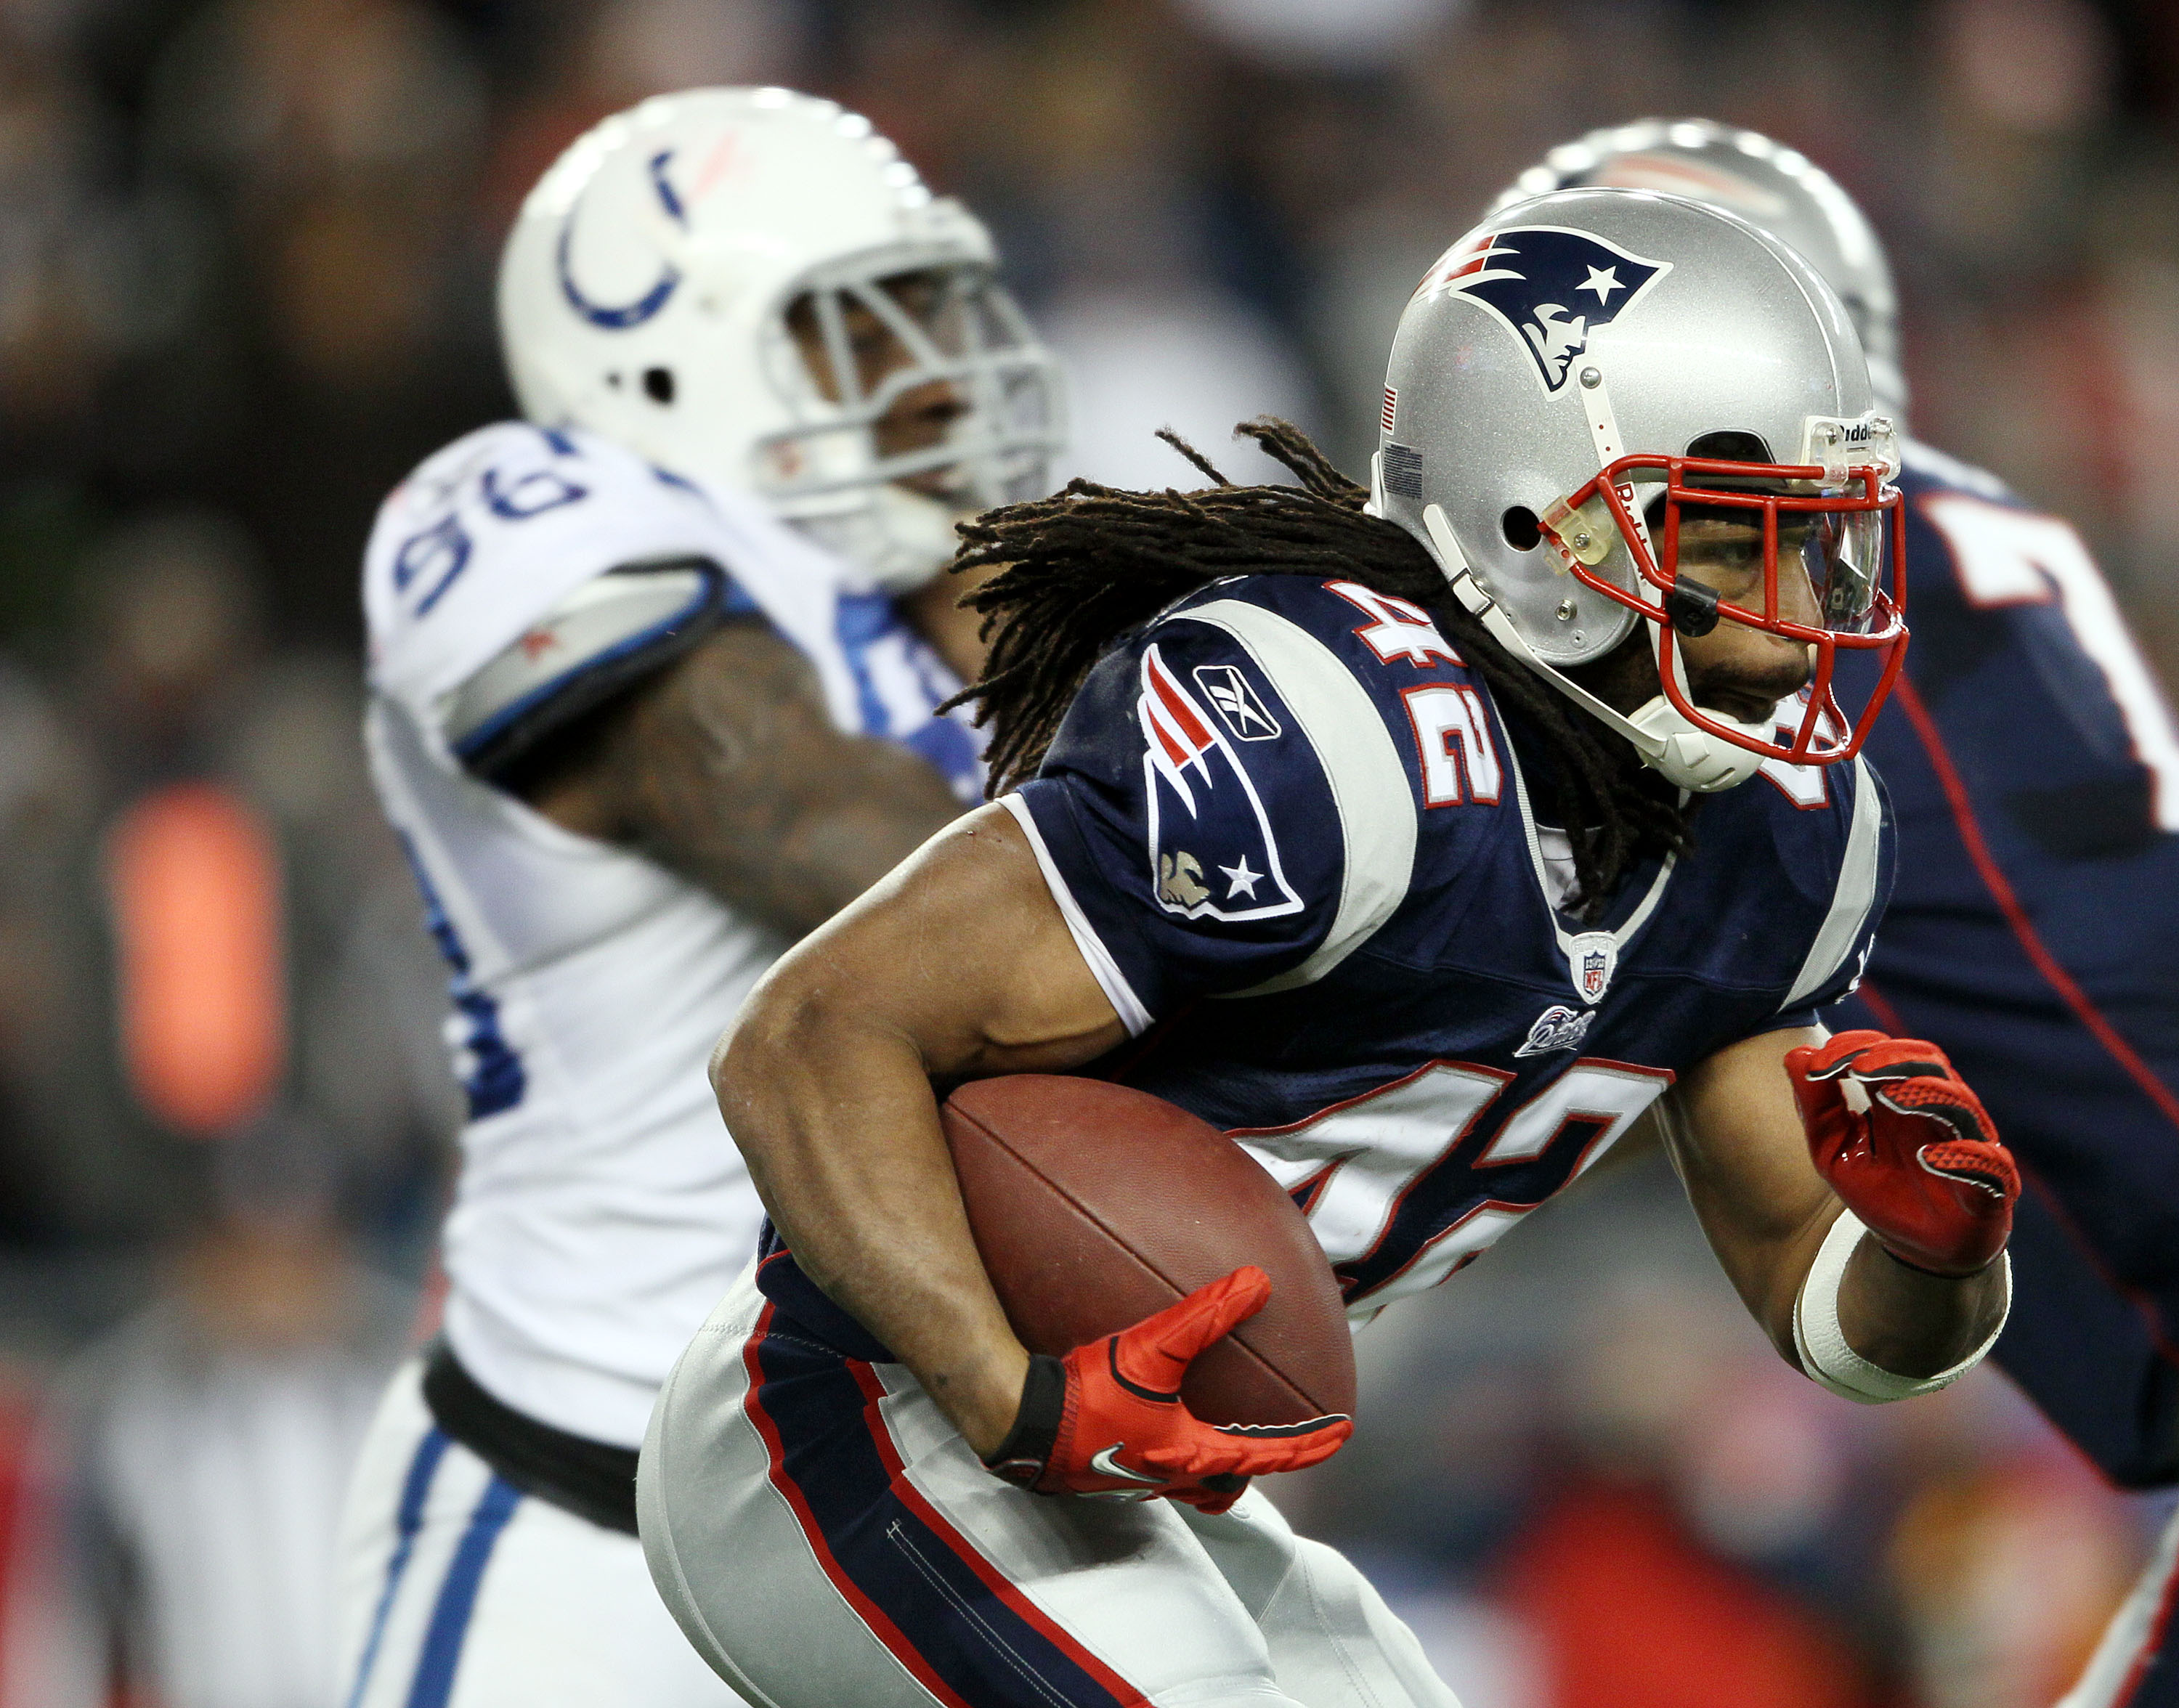 FOXBORO, MA - NOVEMBER 21:  BenJarvus Green-Ellis #42 of the New England Patriots carries the ball in the first half against the Indianapolis Colts on November 21, 2010 at Gillette Stadium in Foxboro, Massachusetts. The Patriots defeated the Colts 31-28.